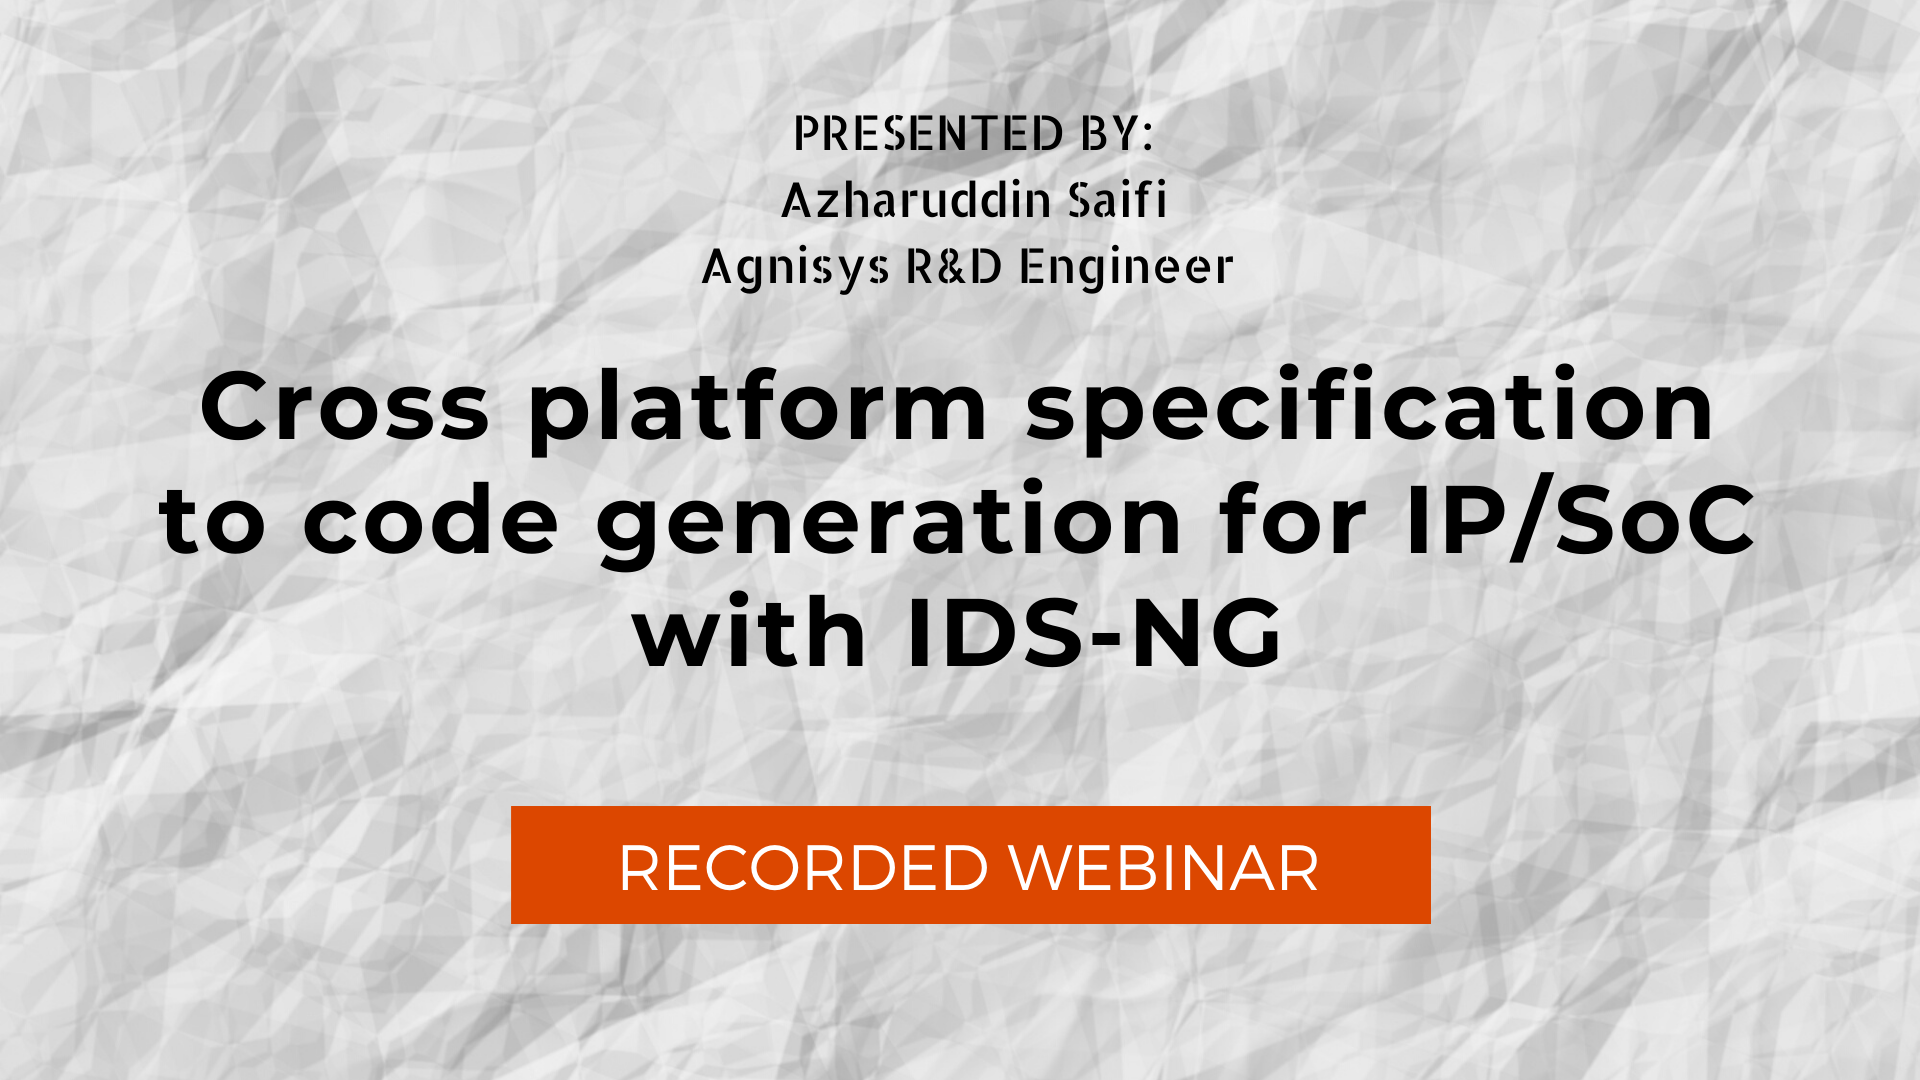 Cross platform specification to code generation for IP/SoC with IDS-NG